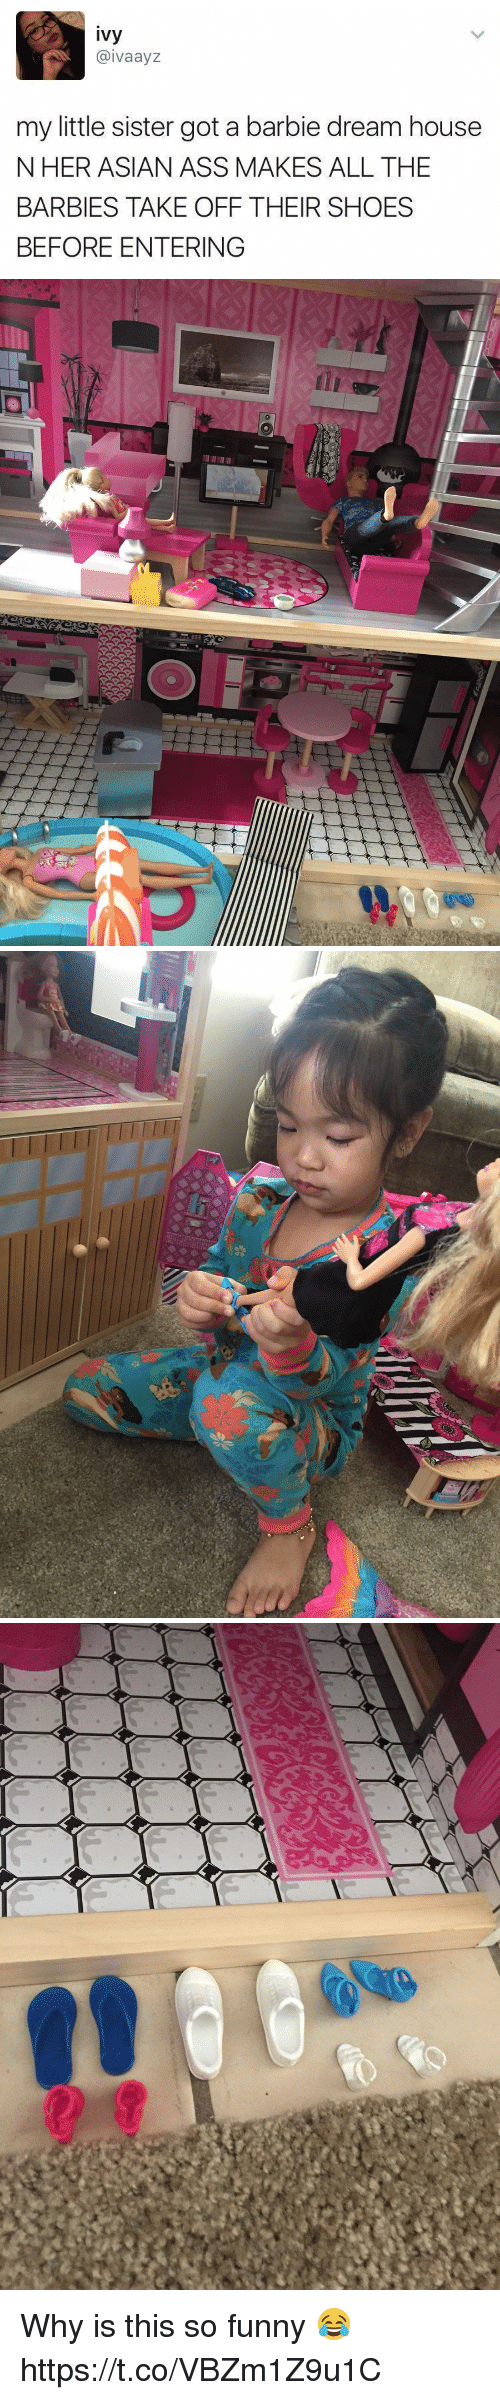 Asian, Ass, and Barbie: ivy  @ivaayz  my little sister got a barbie dream house  NHER ASIAN ASS MAKES ALL THE  BARBIES TAKE OFF THEIR SHOES  BEFORE ENTERING Why is this so funny 😂 https://t.co/VBZm1Z9u1C